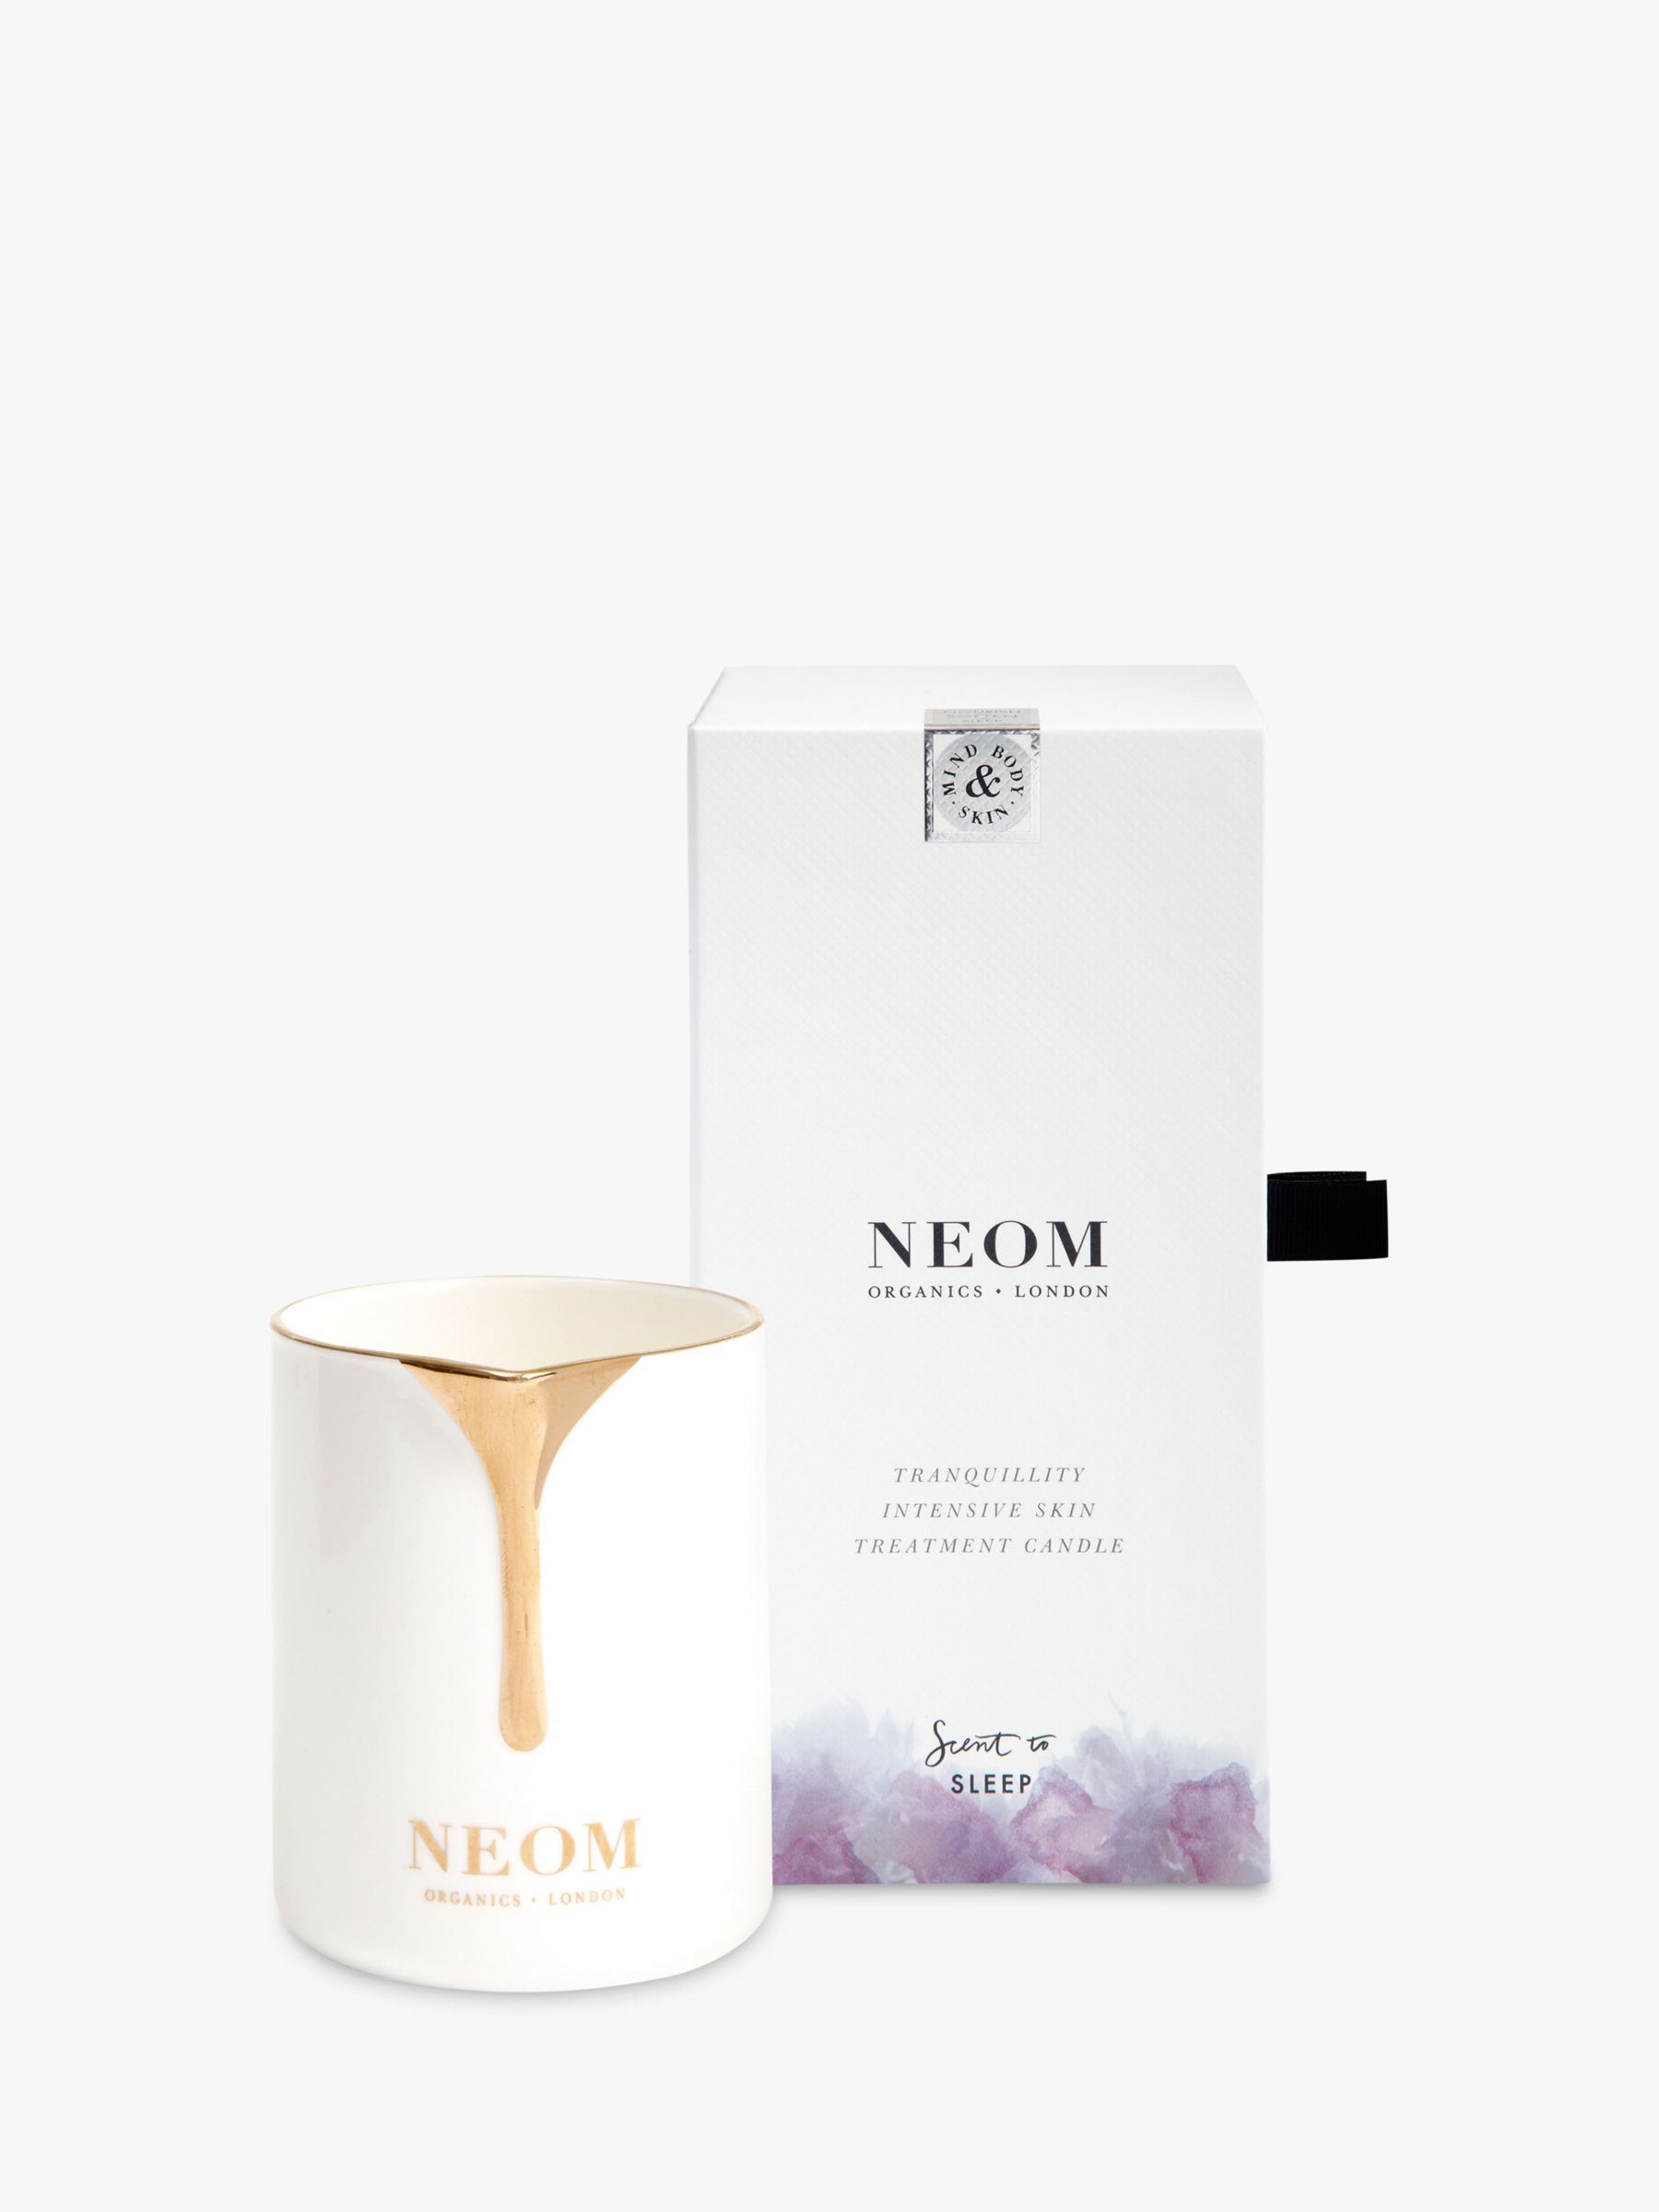 Neom Neom Tranquility Skin Treatment Candle